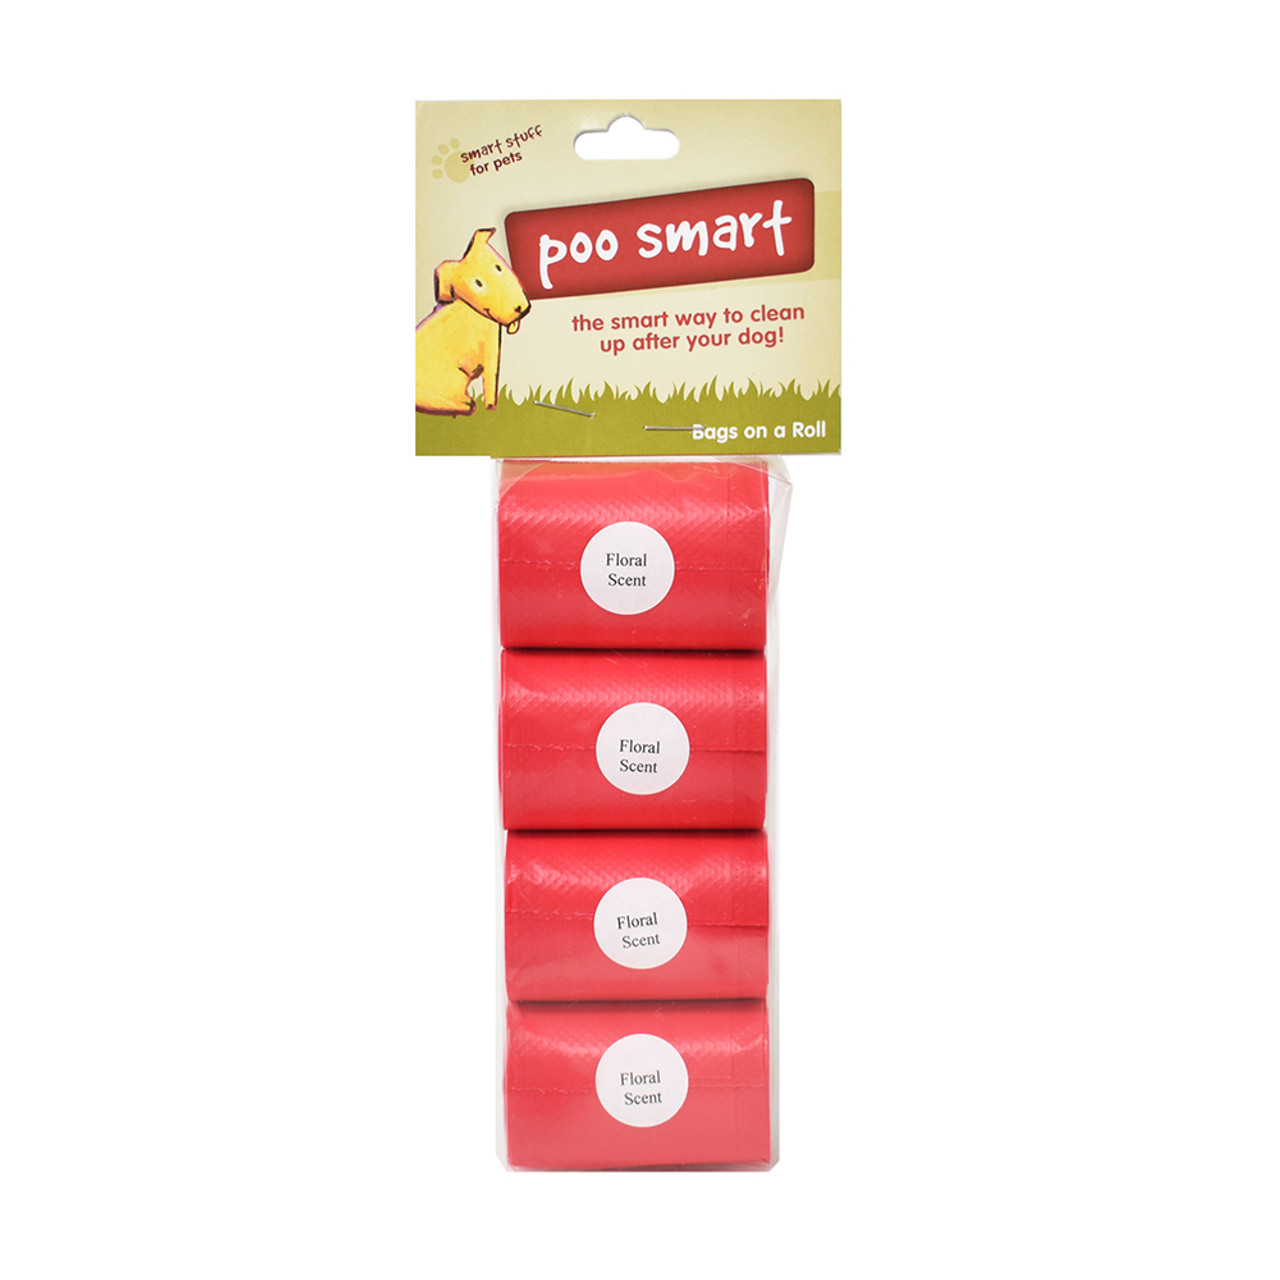 Poo Smart Floral Scent Dog Waste Disposal Refill Bags